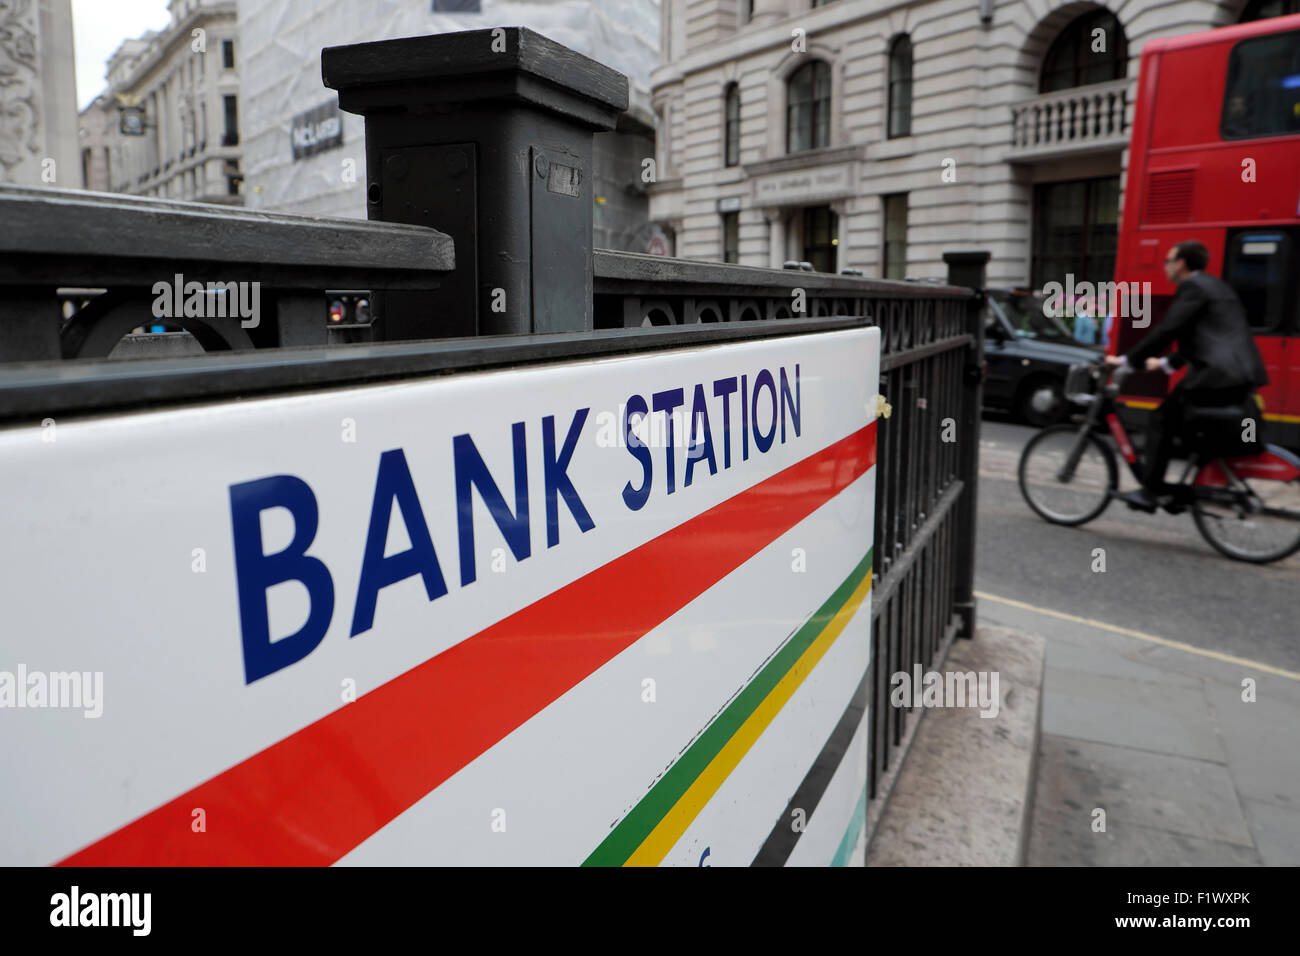 Bank Station underground sign in Lombard Street in the City of London UK  KATHY DEWITT - Stock Image